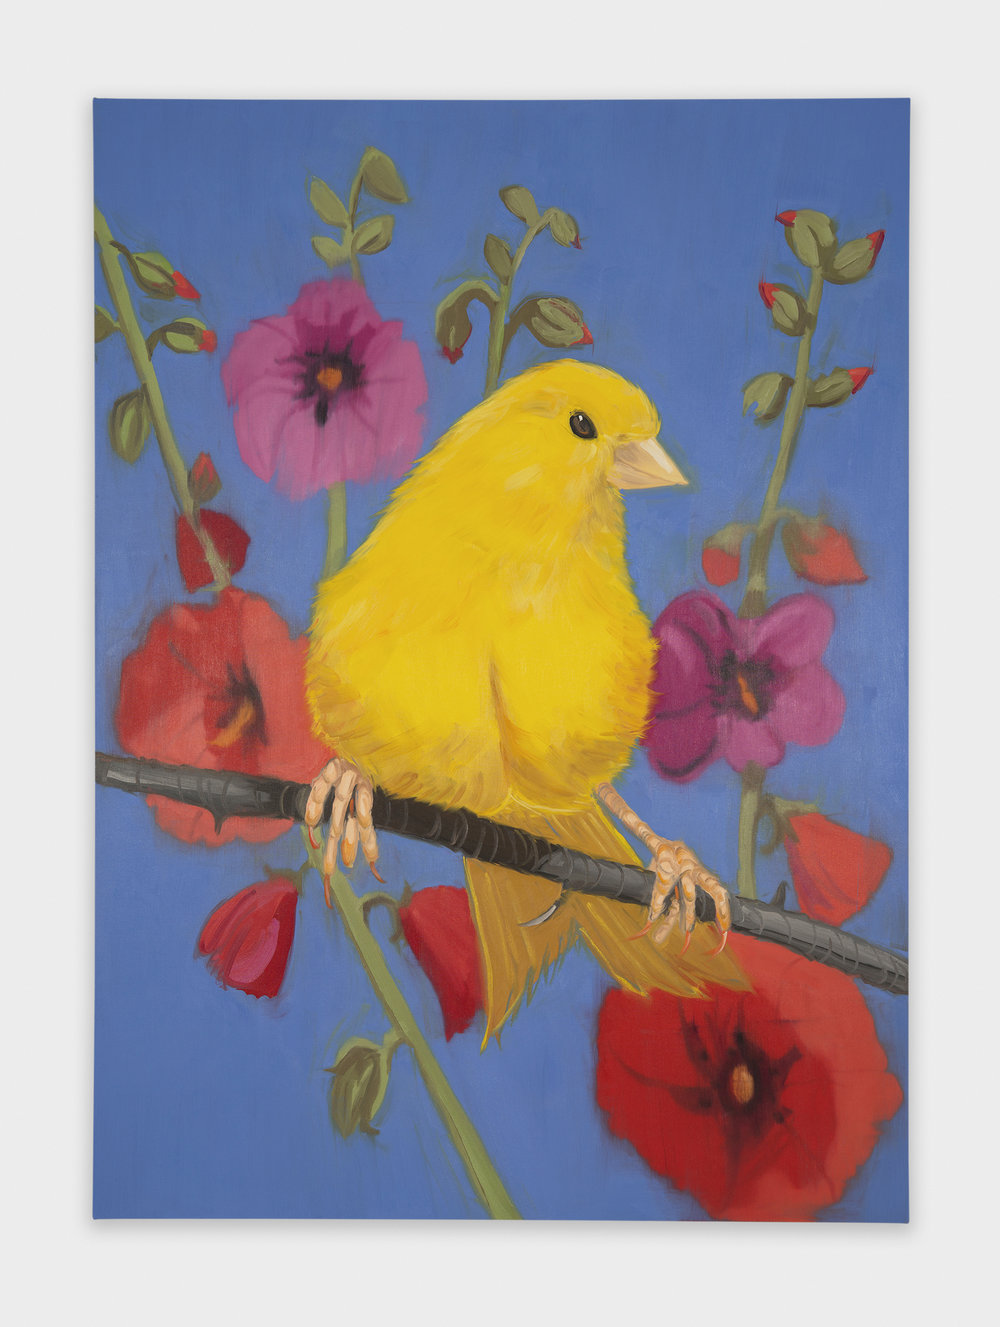 Ann Craven  Yello Fello Yello  2018 Oil on canvas 84h x 60w in AC167